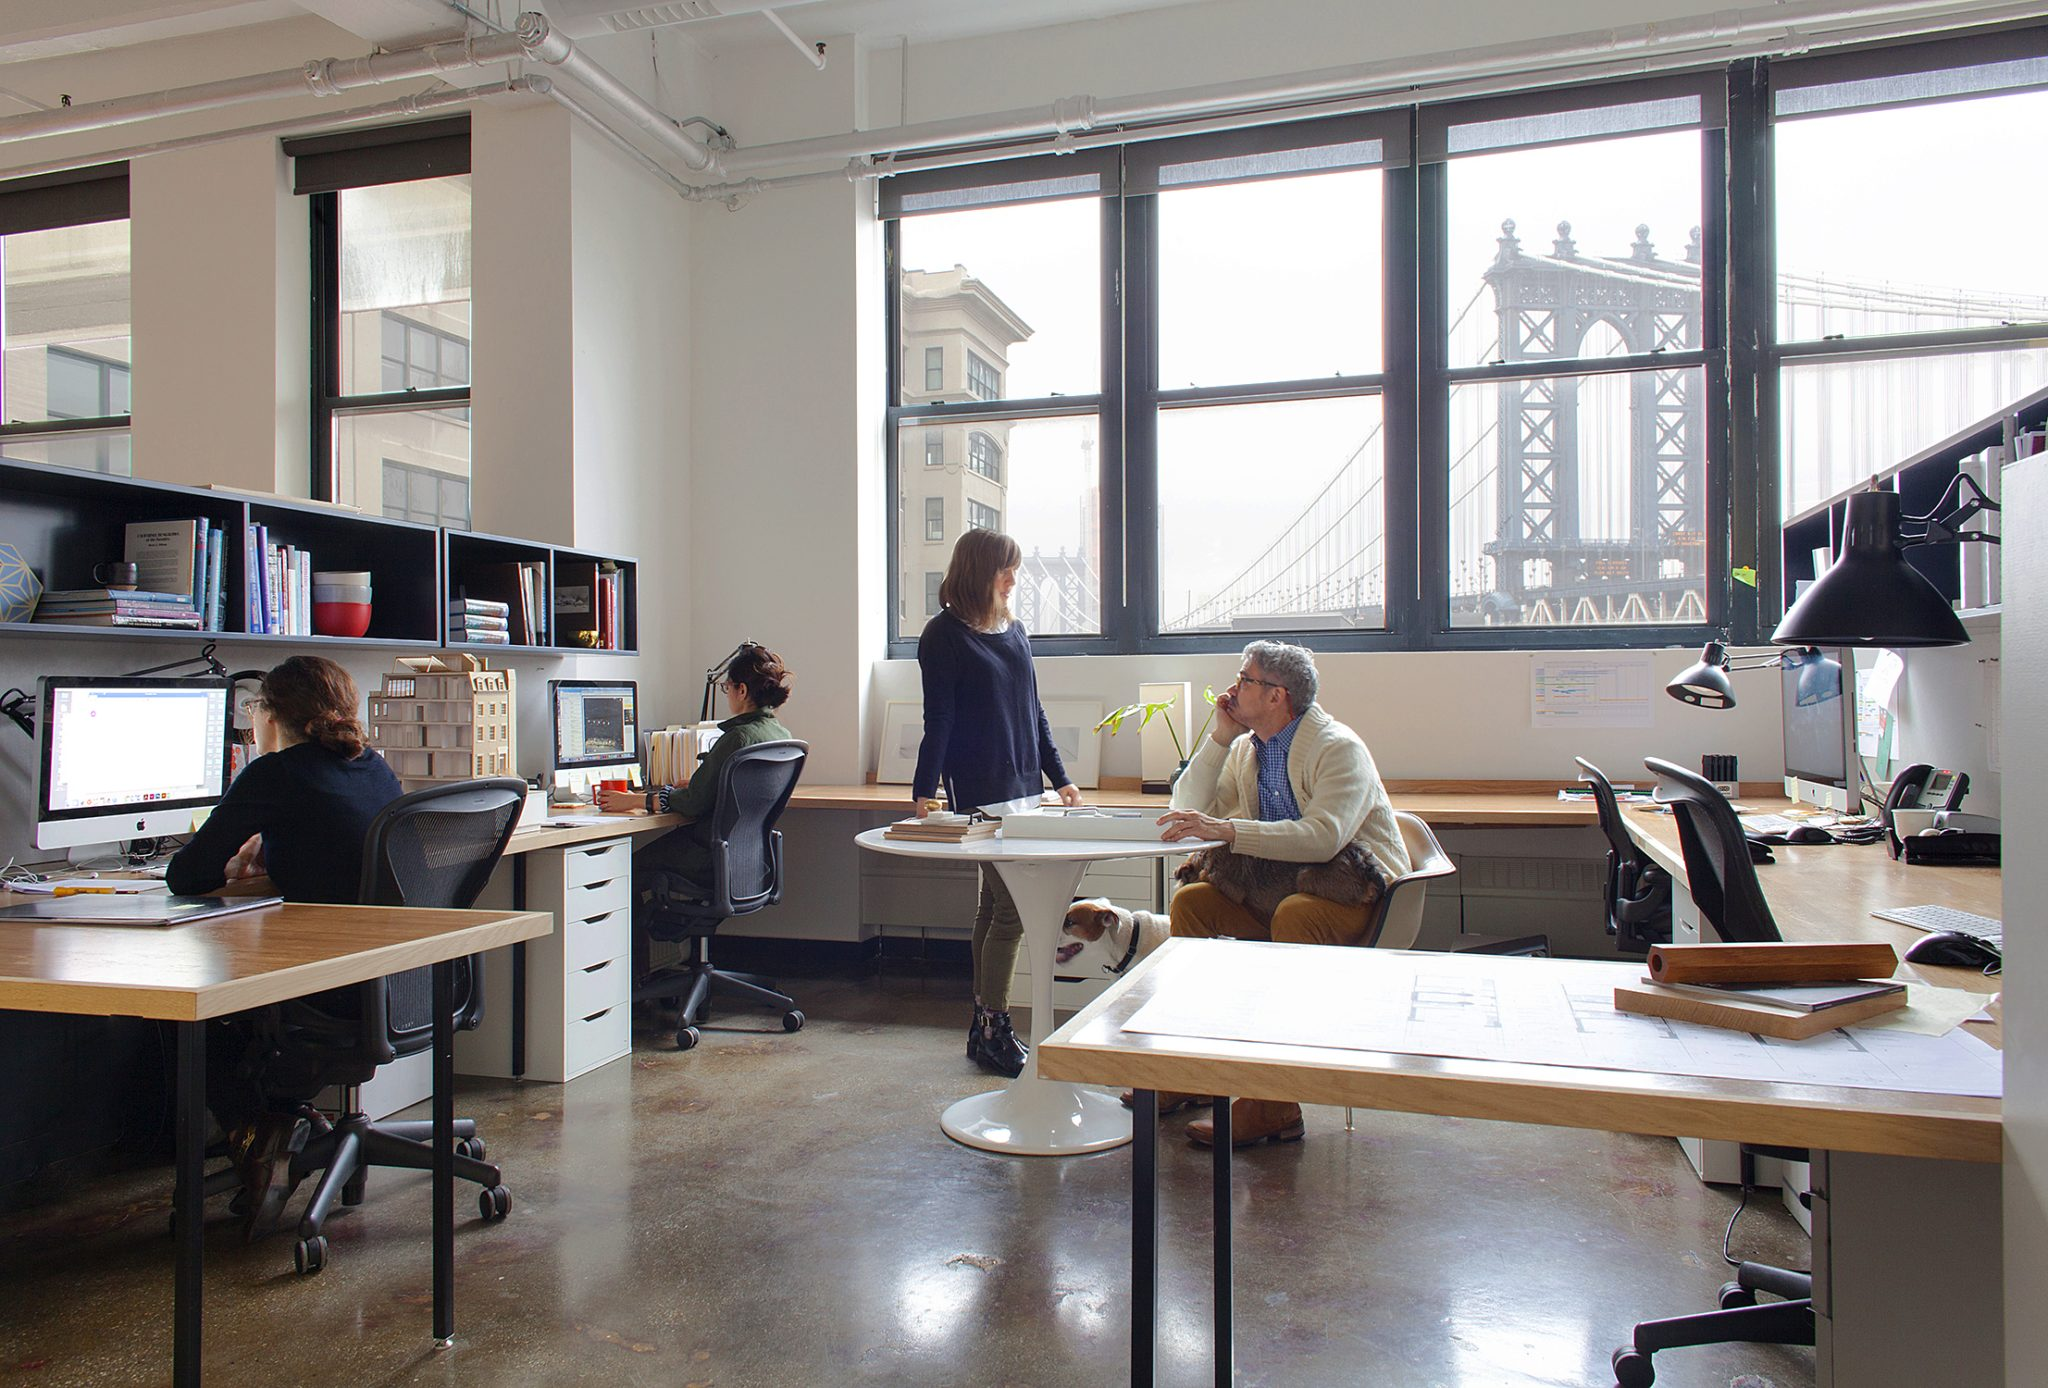 """CWB Architects   Brooklyn, New York   """"In 2017 we relocated our DUMBO office from the 12th to the eighth floor of 45 Main Street, a converted factory building. Our team of architects had outgrown the existing space and the design had begun to feel dated. Our office has always been a hub for Brooklyn creatives, with sub-tenants occupying any space not used by the firm. The new space needed to accommodate this shared space while allowing for growth within our own firm. The result is an artfully designed workplace that incorporates an open plan for our designers, office alcoves for sub-tenants, conference rooms for private meetings, and a kitchen for communal meals and conversing across the many disciplines that inhabit our workplace. Our office currently provides a home for ten small Brooklyn businesses, totaling a collective of 40 individuals working for Brooklyn companies, sharing space and ideas throughout our workdays.  """"A foundation of our commercial practice envisions the workplace as a 'mini-city.'Planned neighborhoods of desks connect to """"streets"""" organized around public plazas with varying degrees of importance relative to the kind of programmed gathering activity. Our own office demonstrates this experience to clients and helps us learn first-hand what works and what could be improved. The framework helped us satisfy all our program needs while designing a space that promotes creativity and a sense of community.  """"The functionality of our design manifests in the separation of public and private spaces. Communal areas for meeting and eating are situated toward the entrance to the space and the interior of the building. Our individual work stations are located at the perimeter of the space, buffered from the entrance and accessible to beneficial natural light and air. Color blocking provides visual identifiers to differentiate types of spaces, signifying separation in our open-plan office.""""  —Ward Welch and Jason Boutin, CWB Architects"""